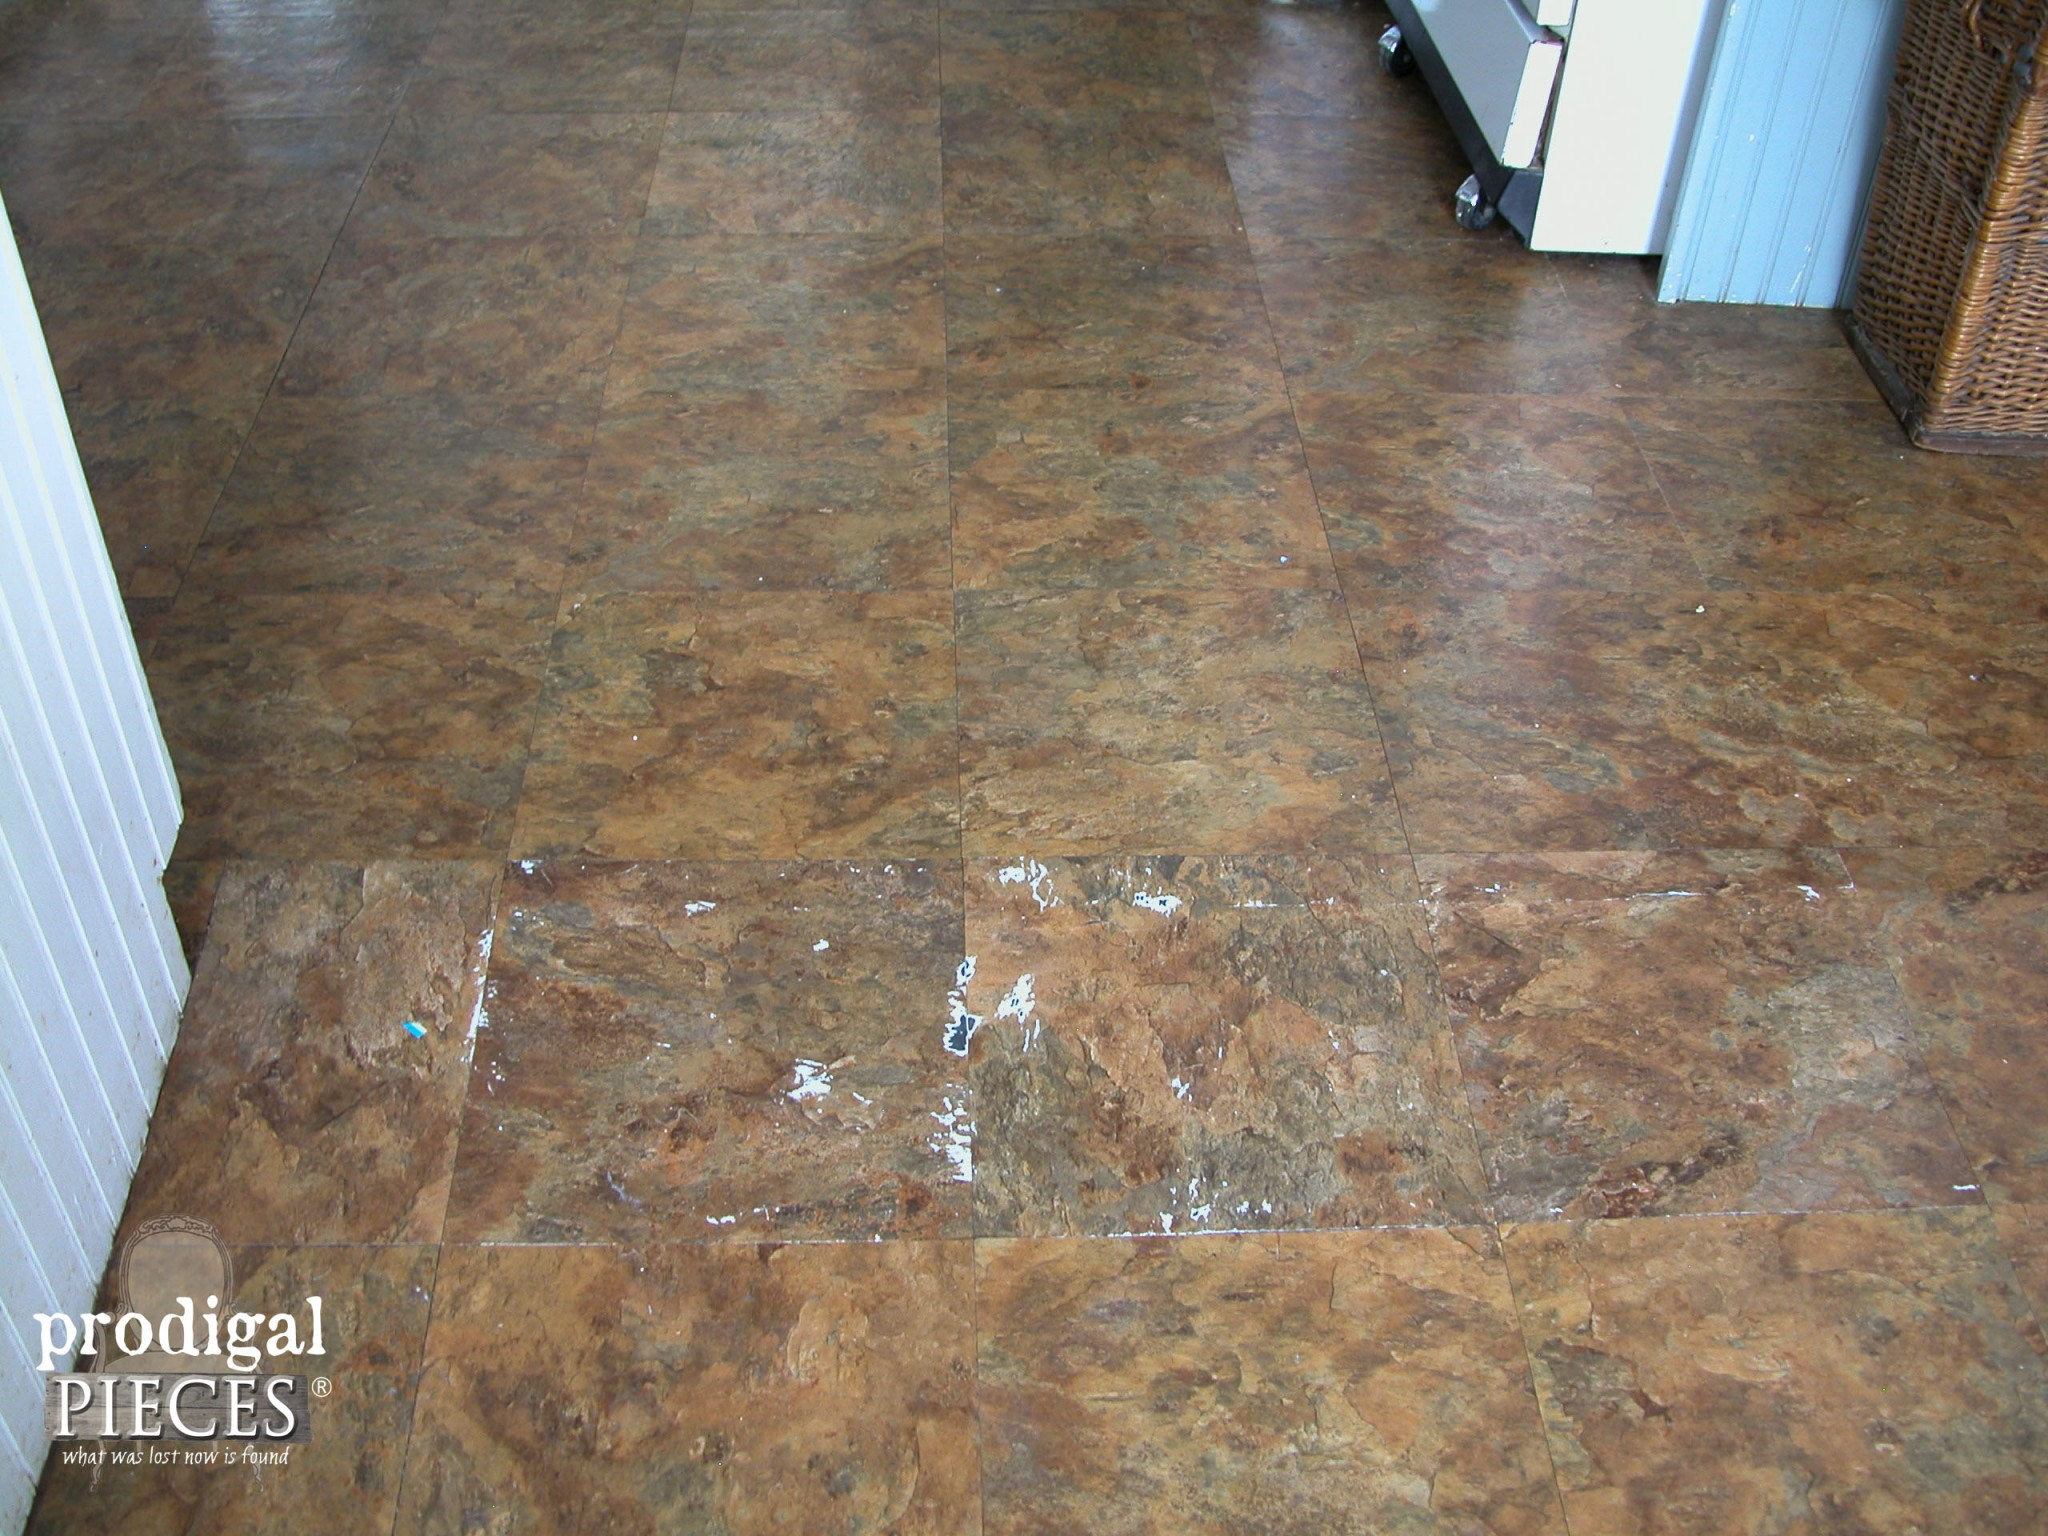 Worn Out Vinyl Flooring by Prodigal Pieces | www.prodigalpieces.com